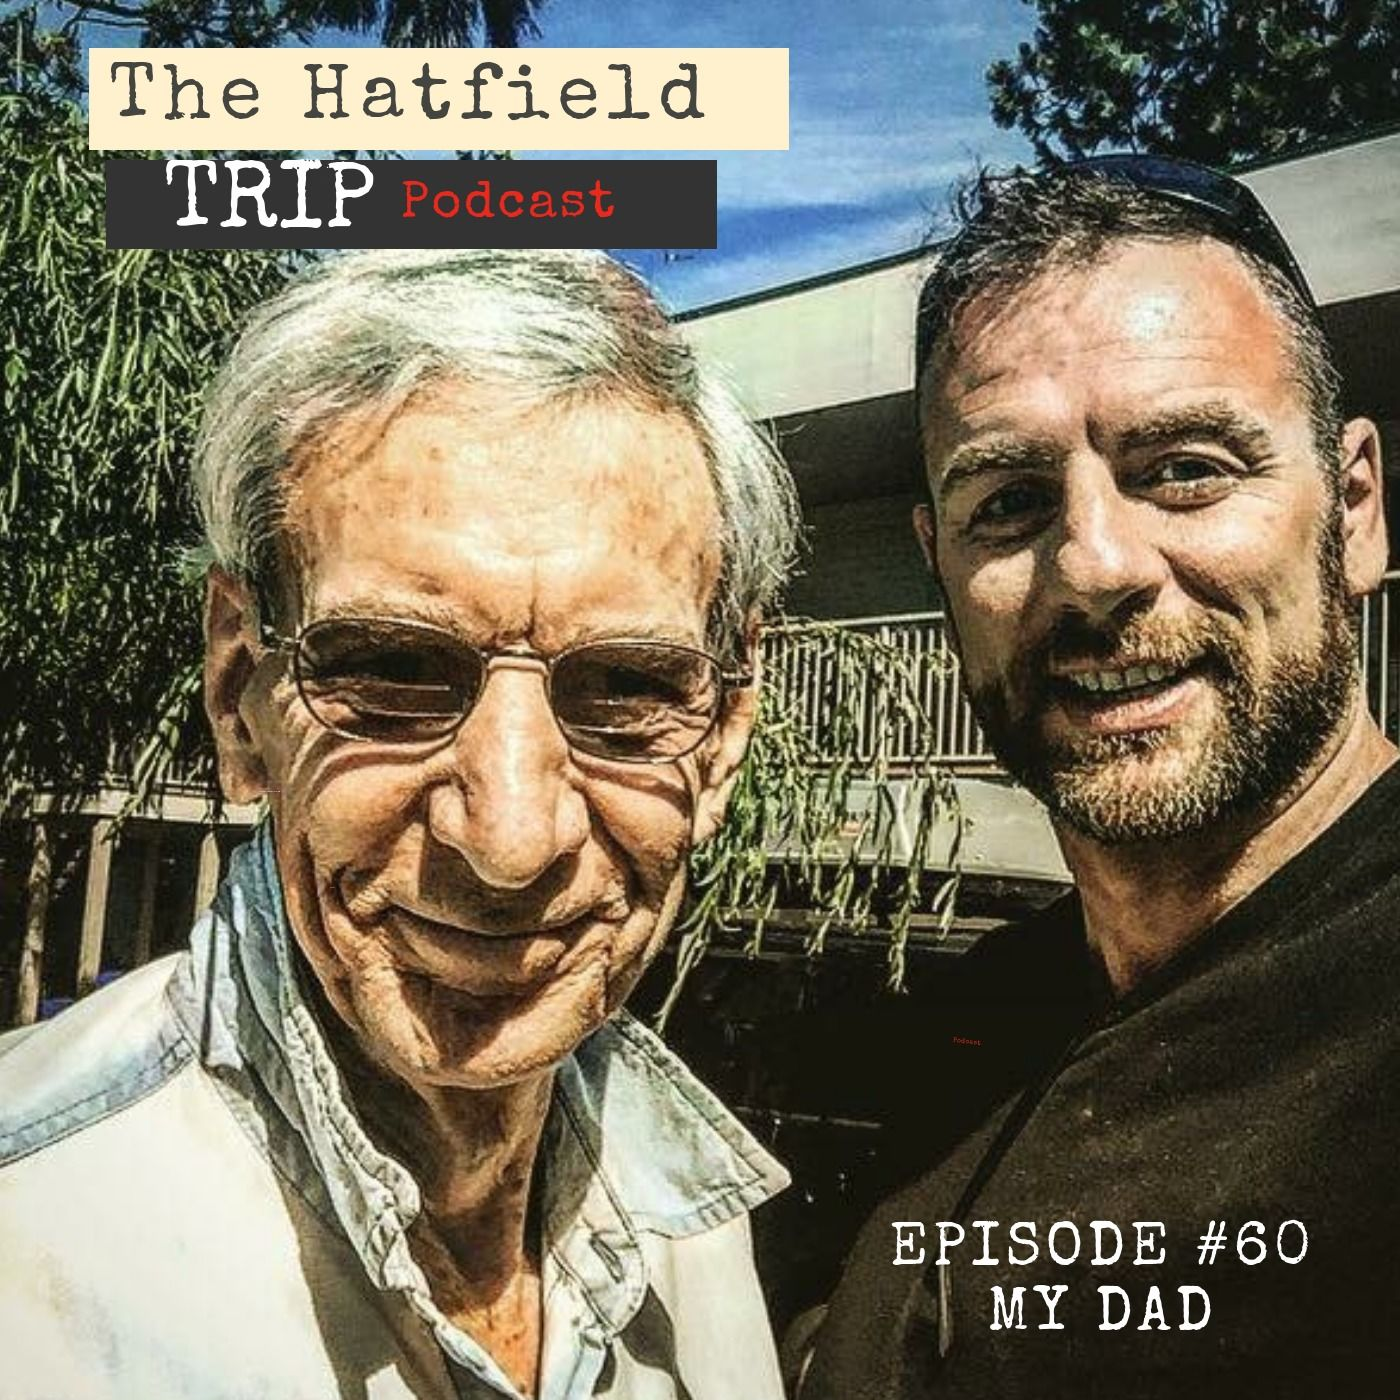 Episode #60 My Dad Part 3